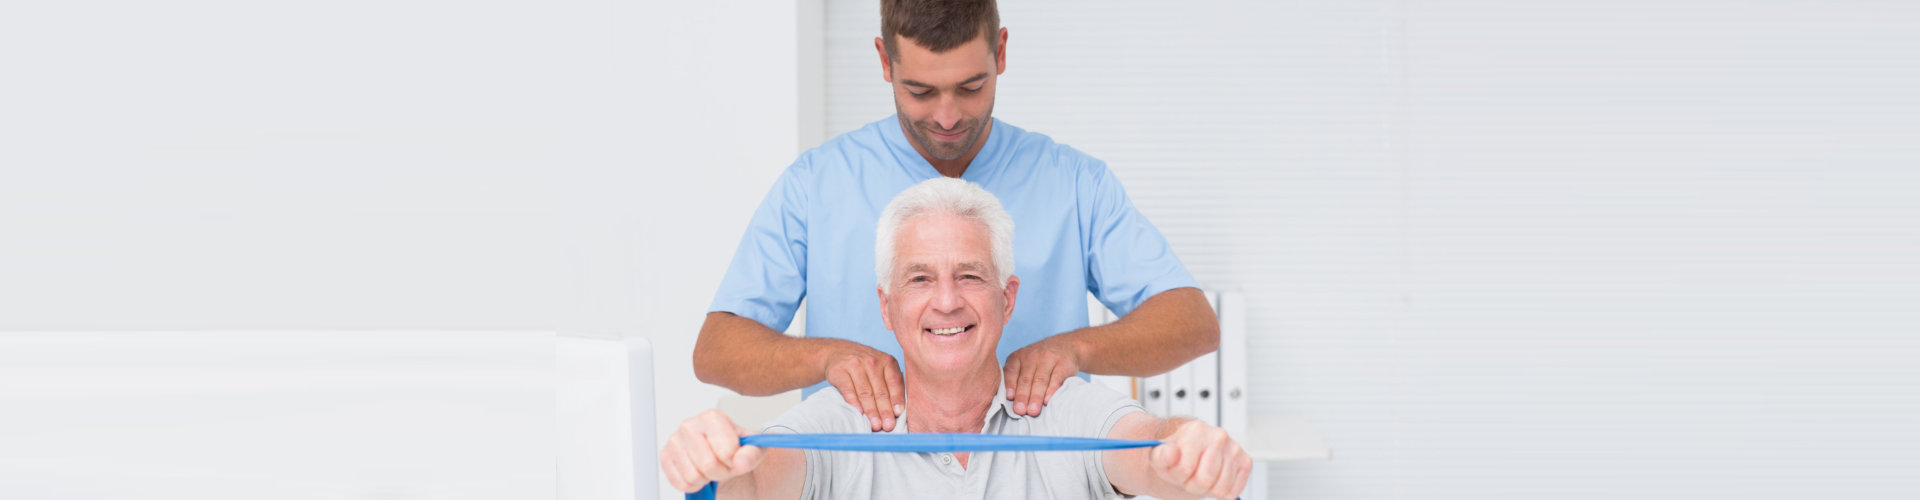 male physical therapist assisting senior man in exercising with resistance band